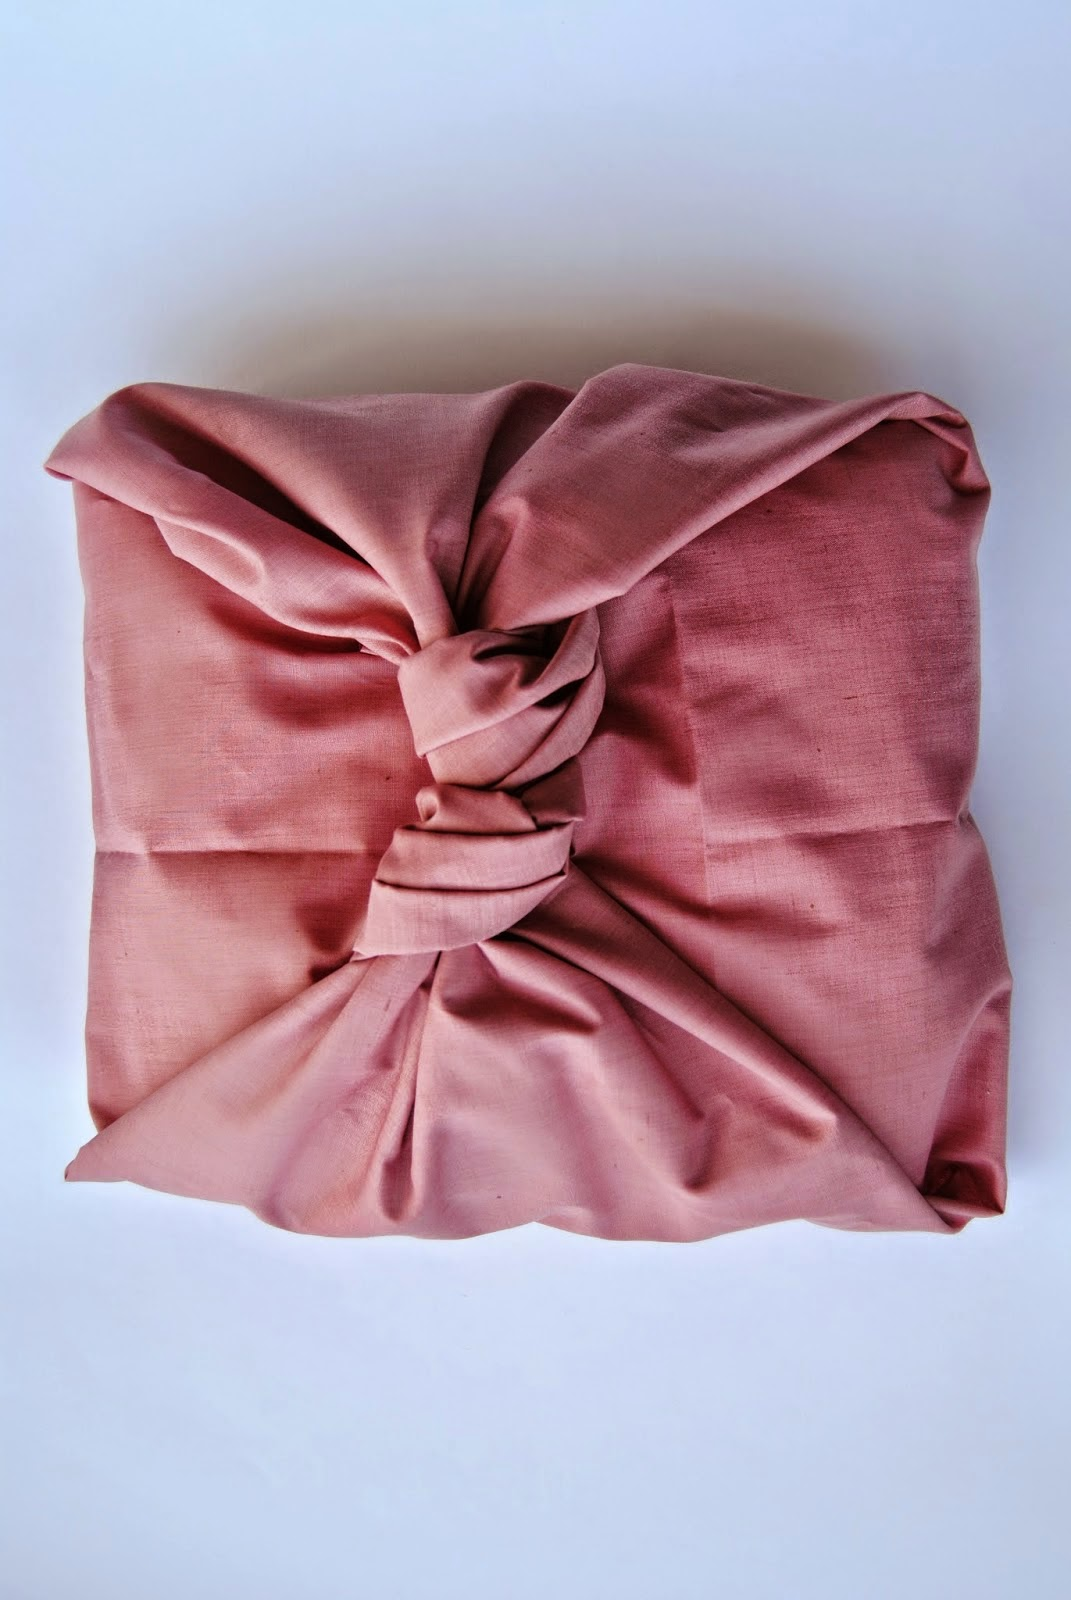 http://thecuriouslifeoflisa.blogspot.co.uk/2015/02/diy-no-sew-pillowcase.html